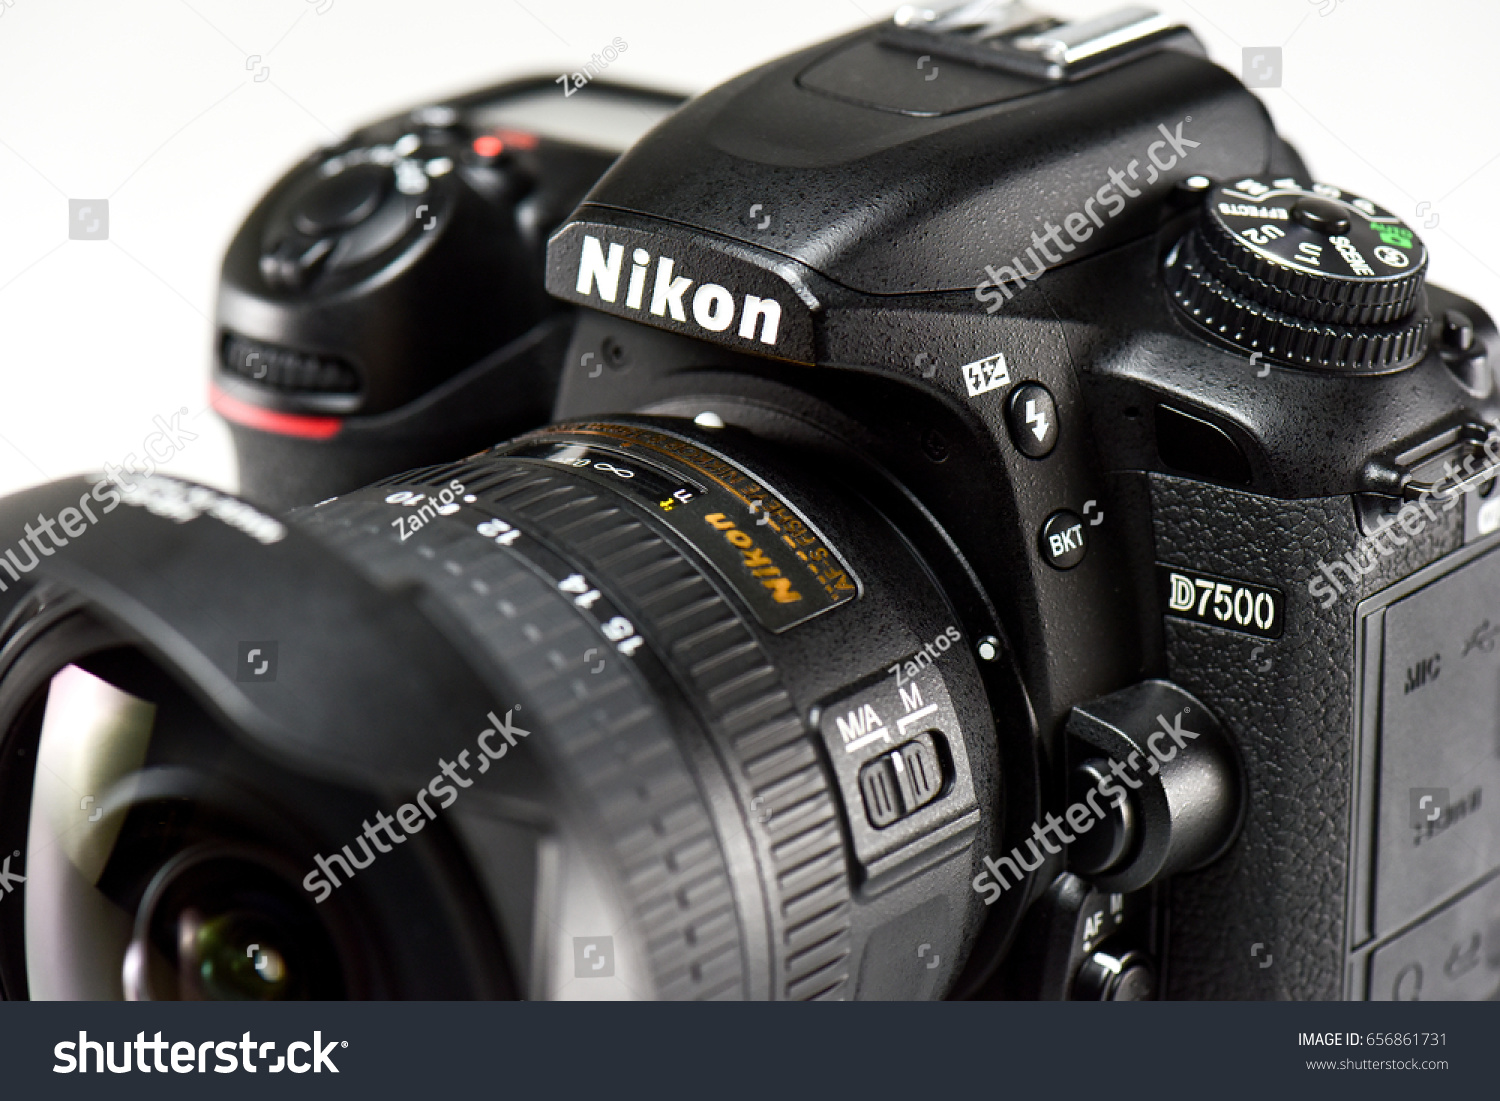 Nikon D 7500 Latest Dslr Camera Stock Photo Edit Now 8 Megapixel Cmos Imaging Sensor The D7500 Is Designed For Crisp 209